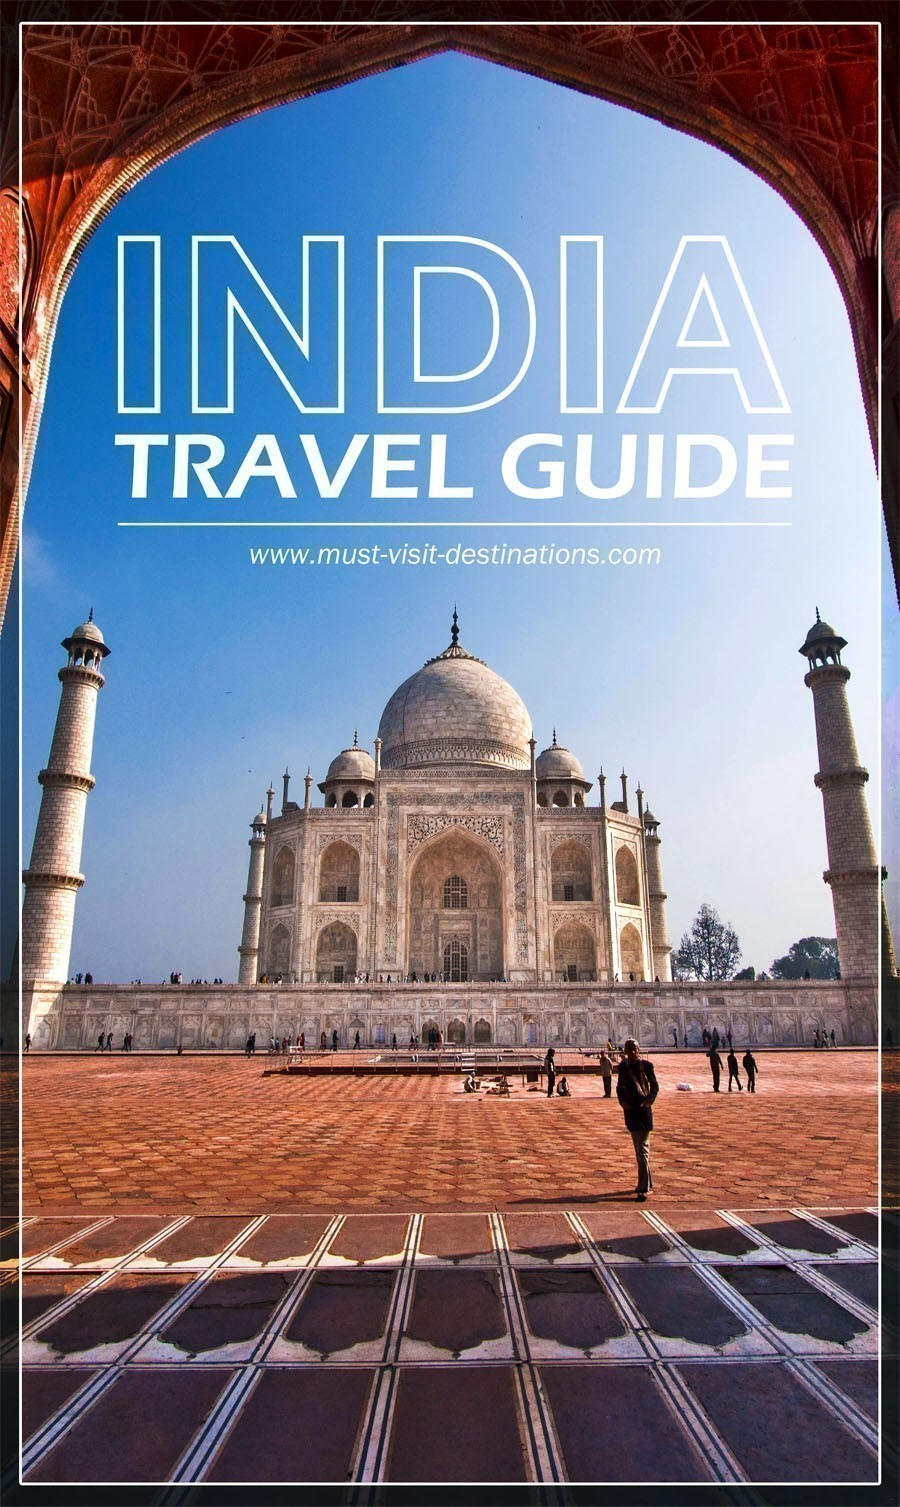 An awesome travel guide to help plan your trip to India. #travel #guide